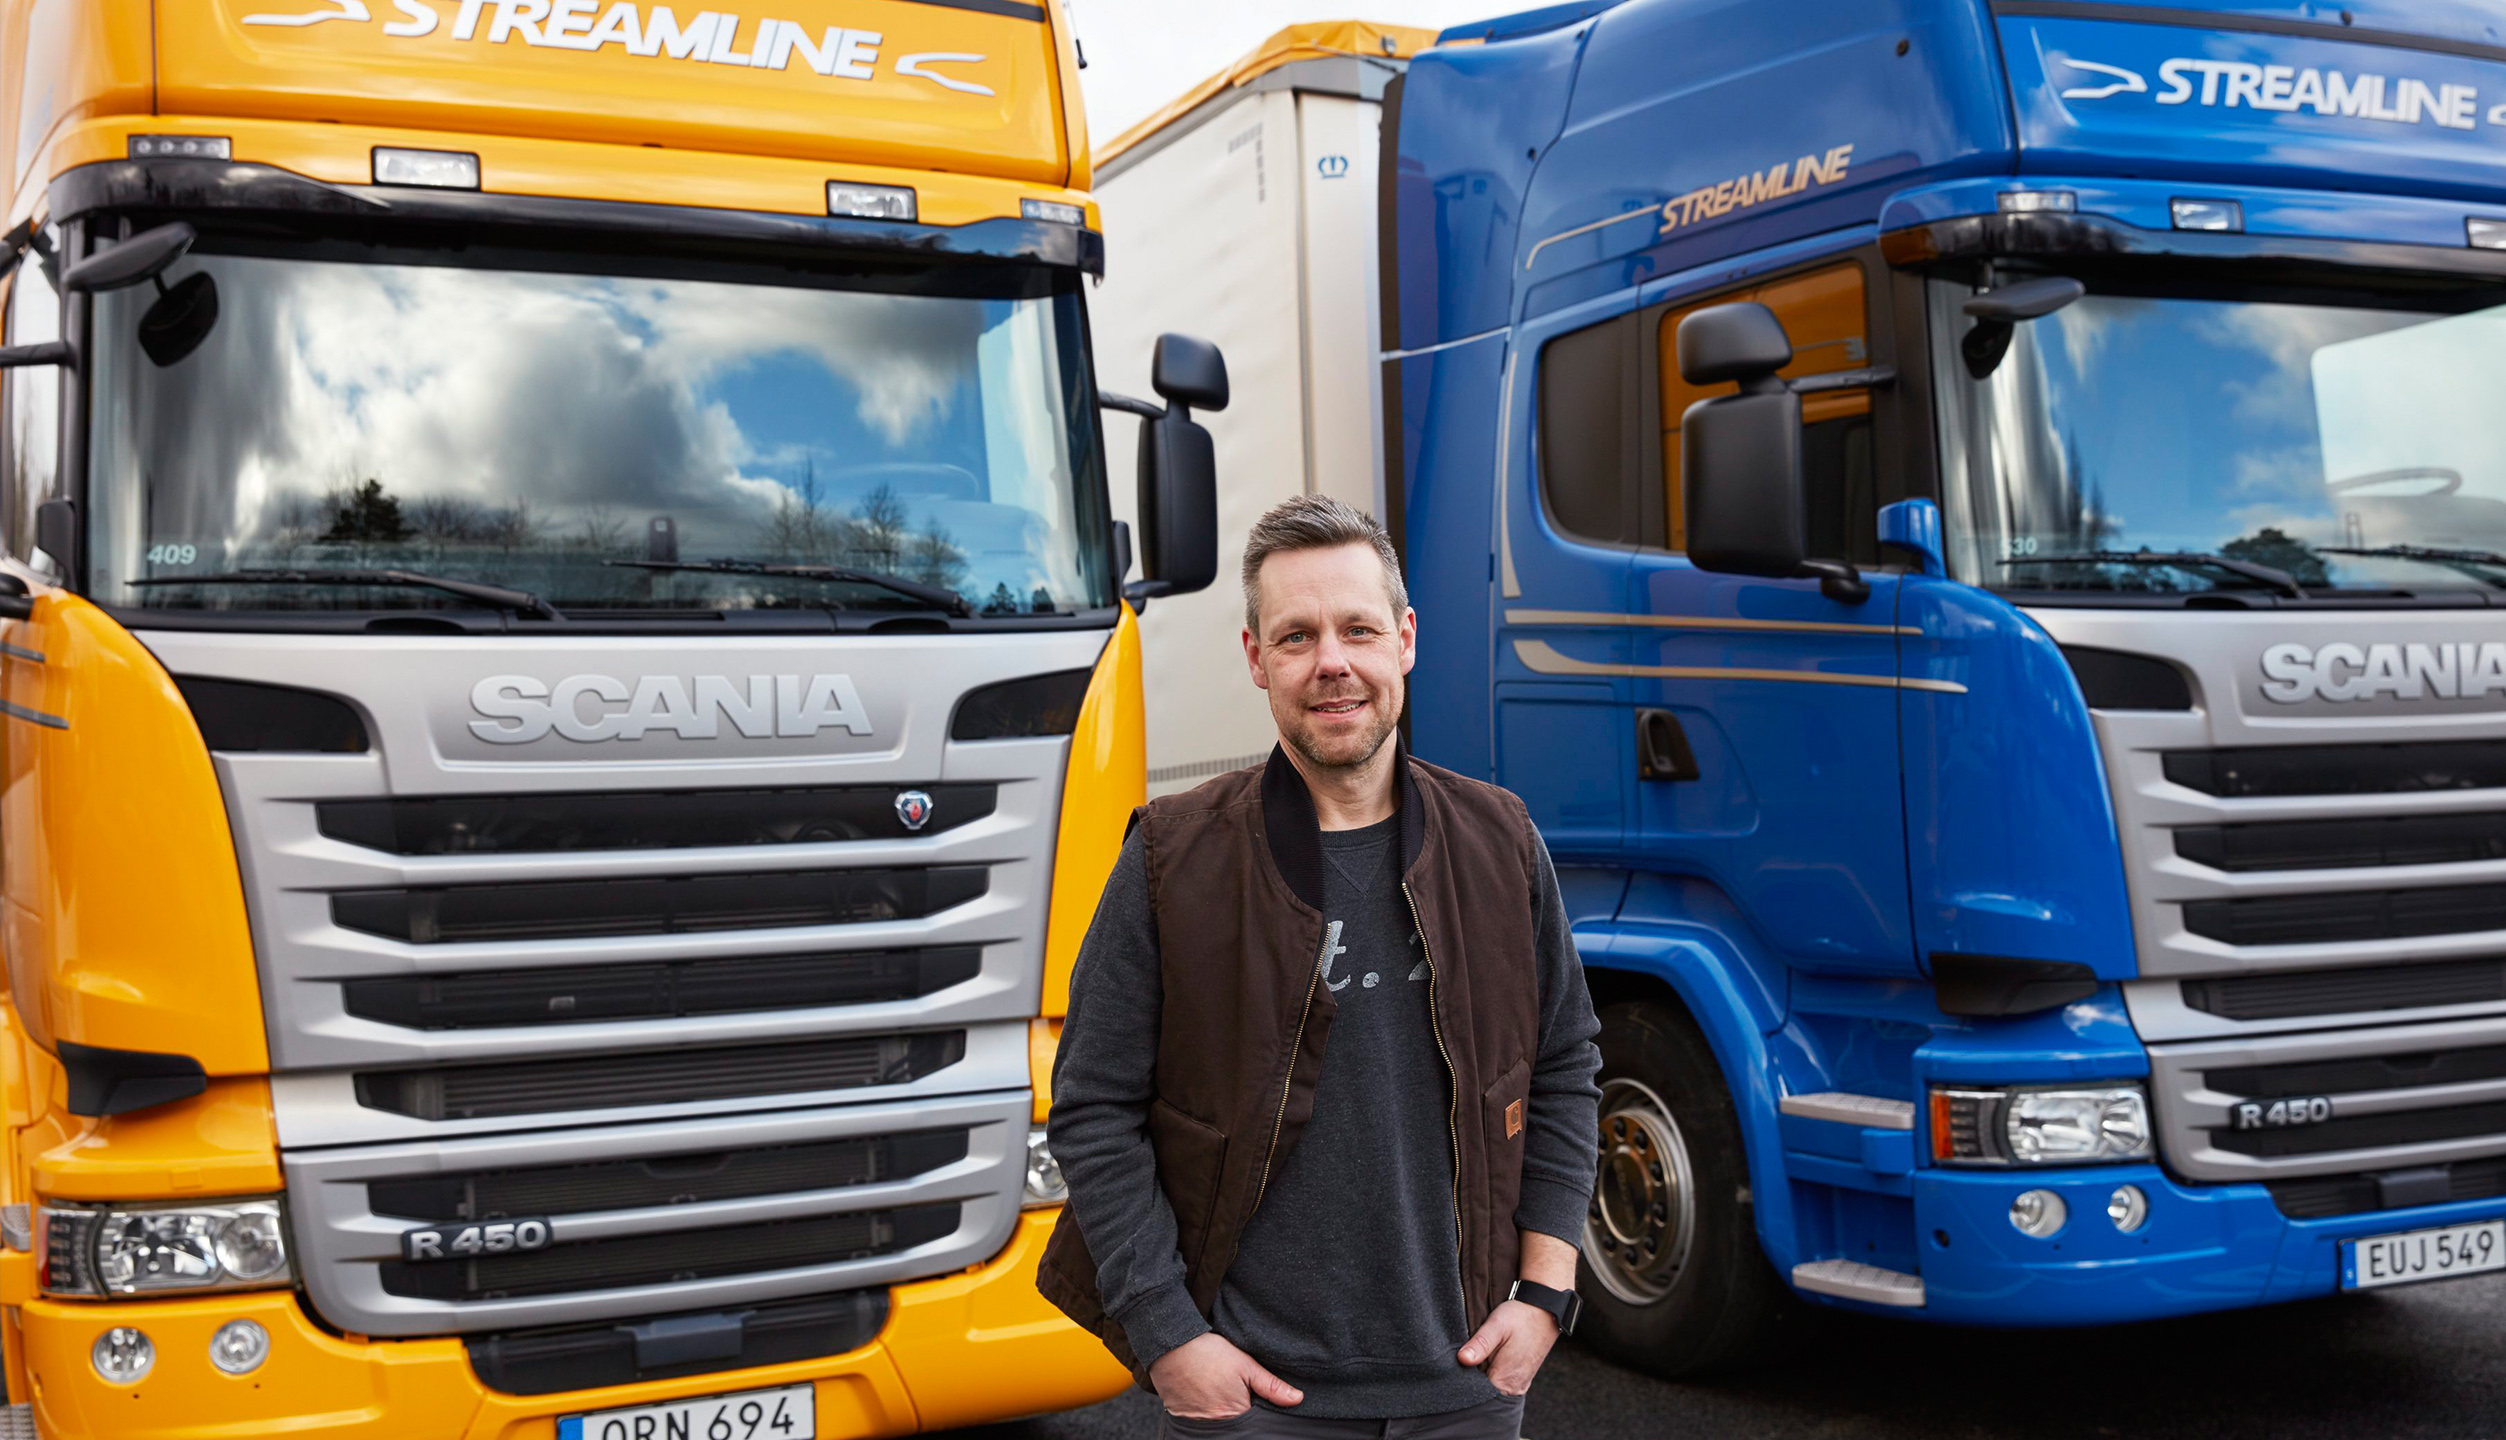 A man standing in front of two Scania trucks